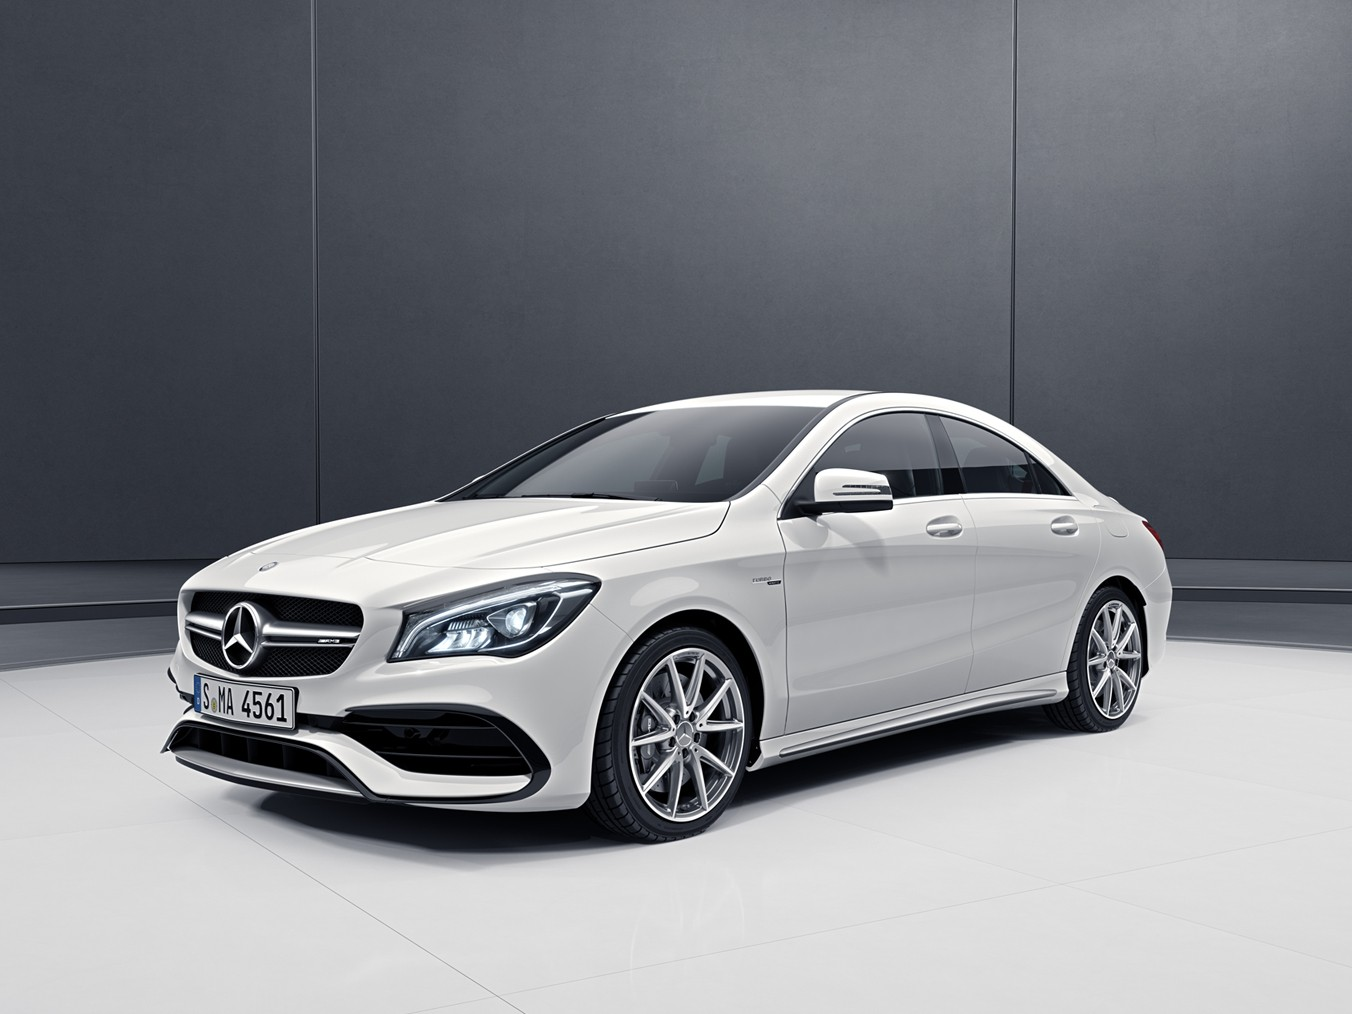 2017 mercedes amg cla 45 india launch date images features tech specs and prices motoroids. Black Bedroom Furniture Sets. Home Design Ideas